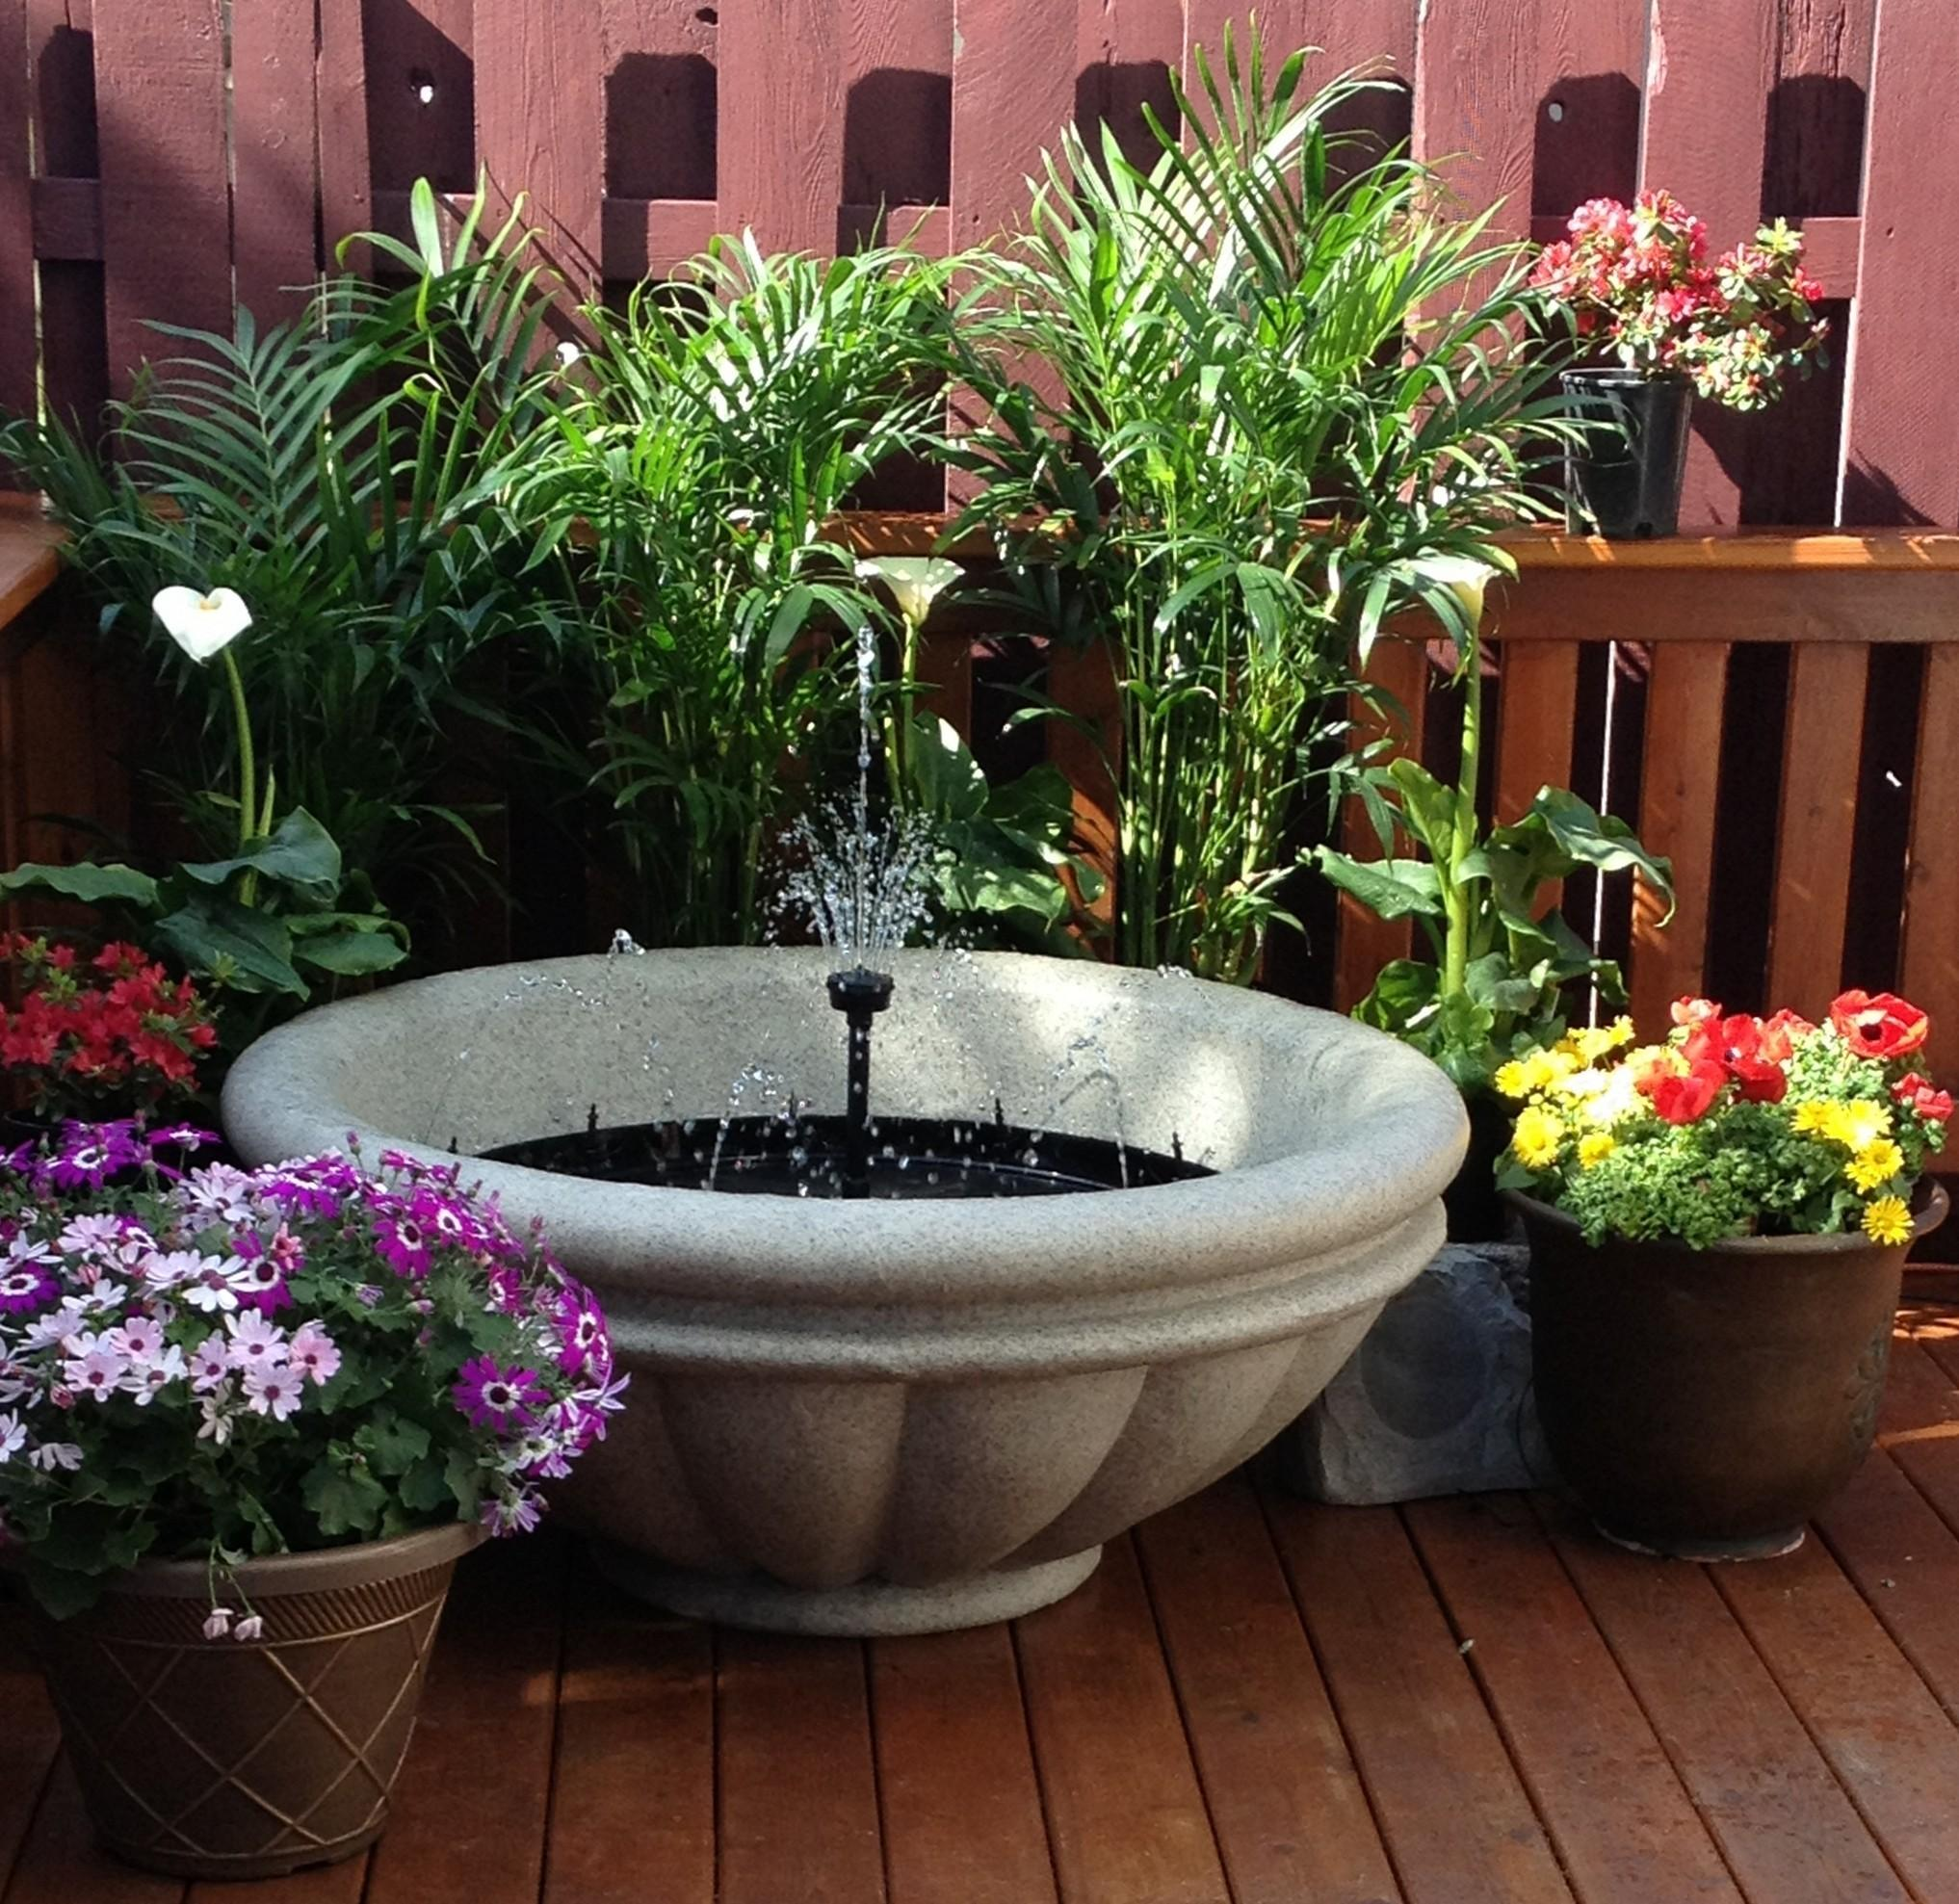 27 Fantastic Small Diy Patio Fountain That You Would Love To See Stunning Photos Decoratorist